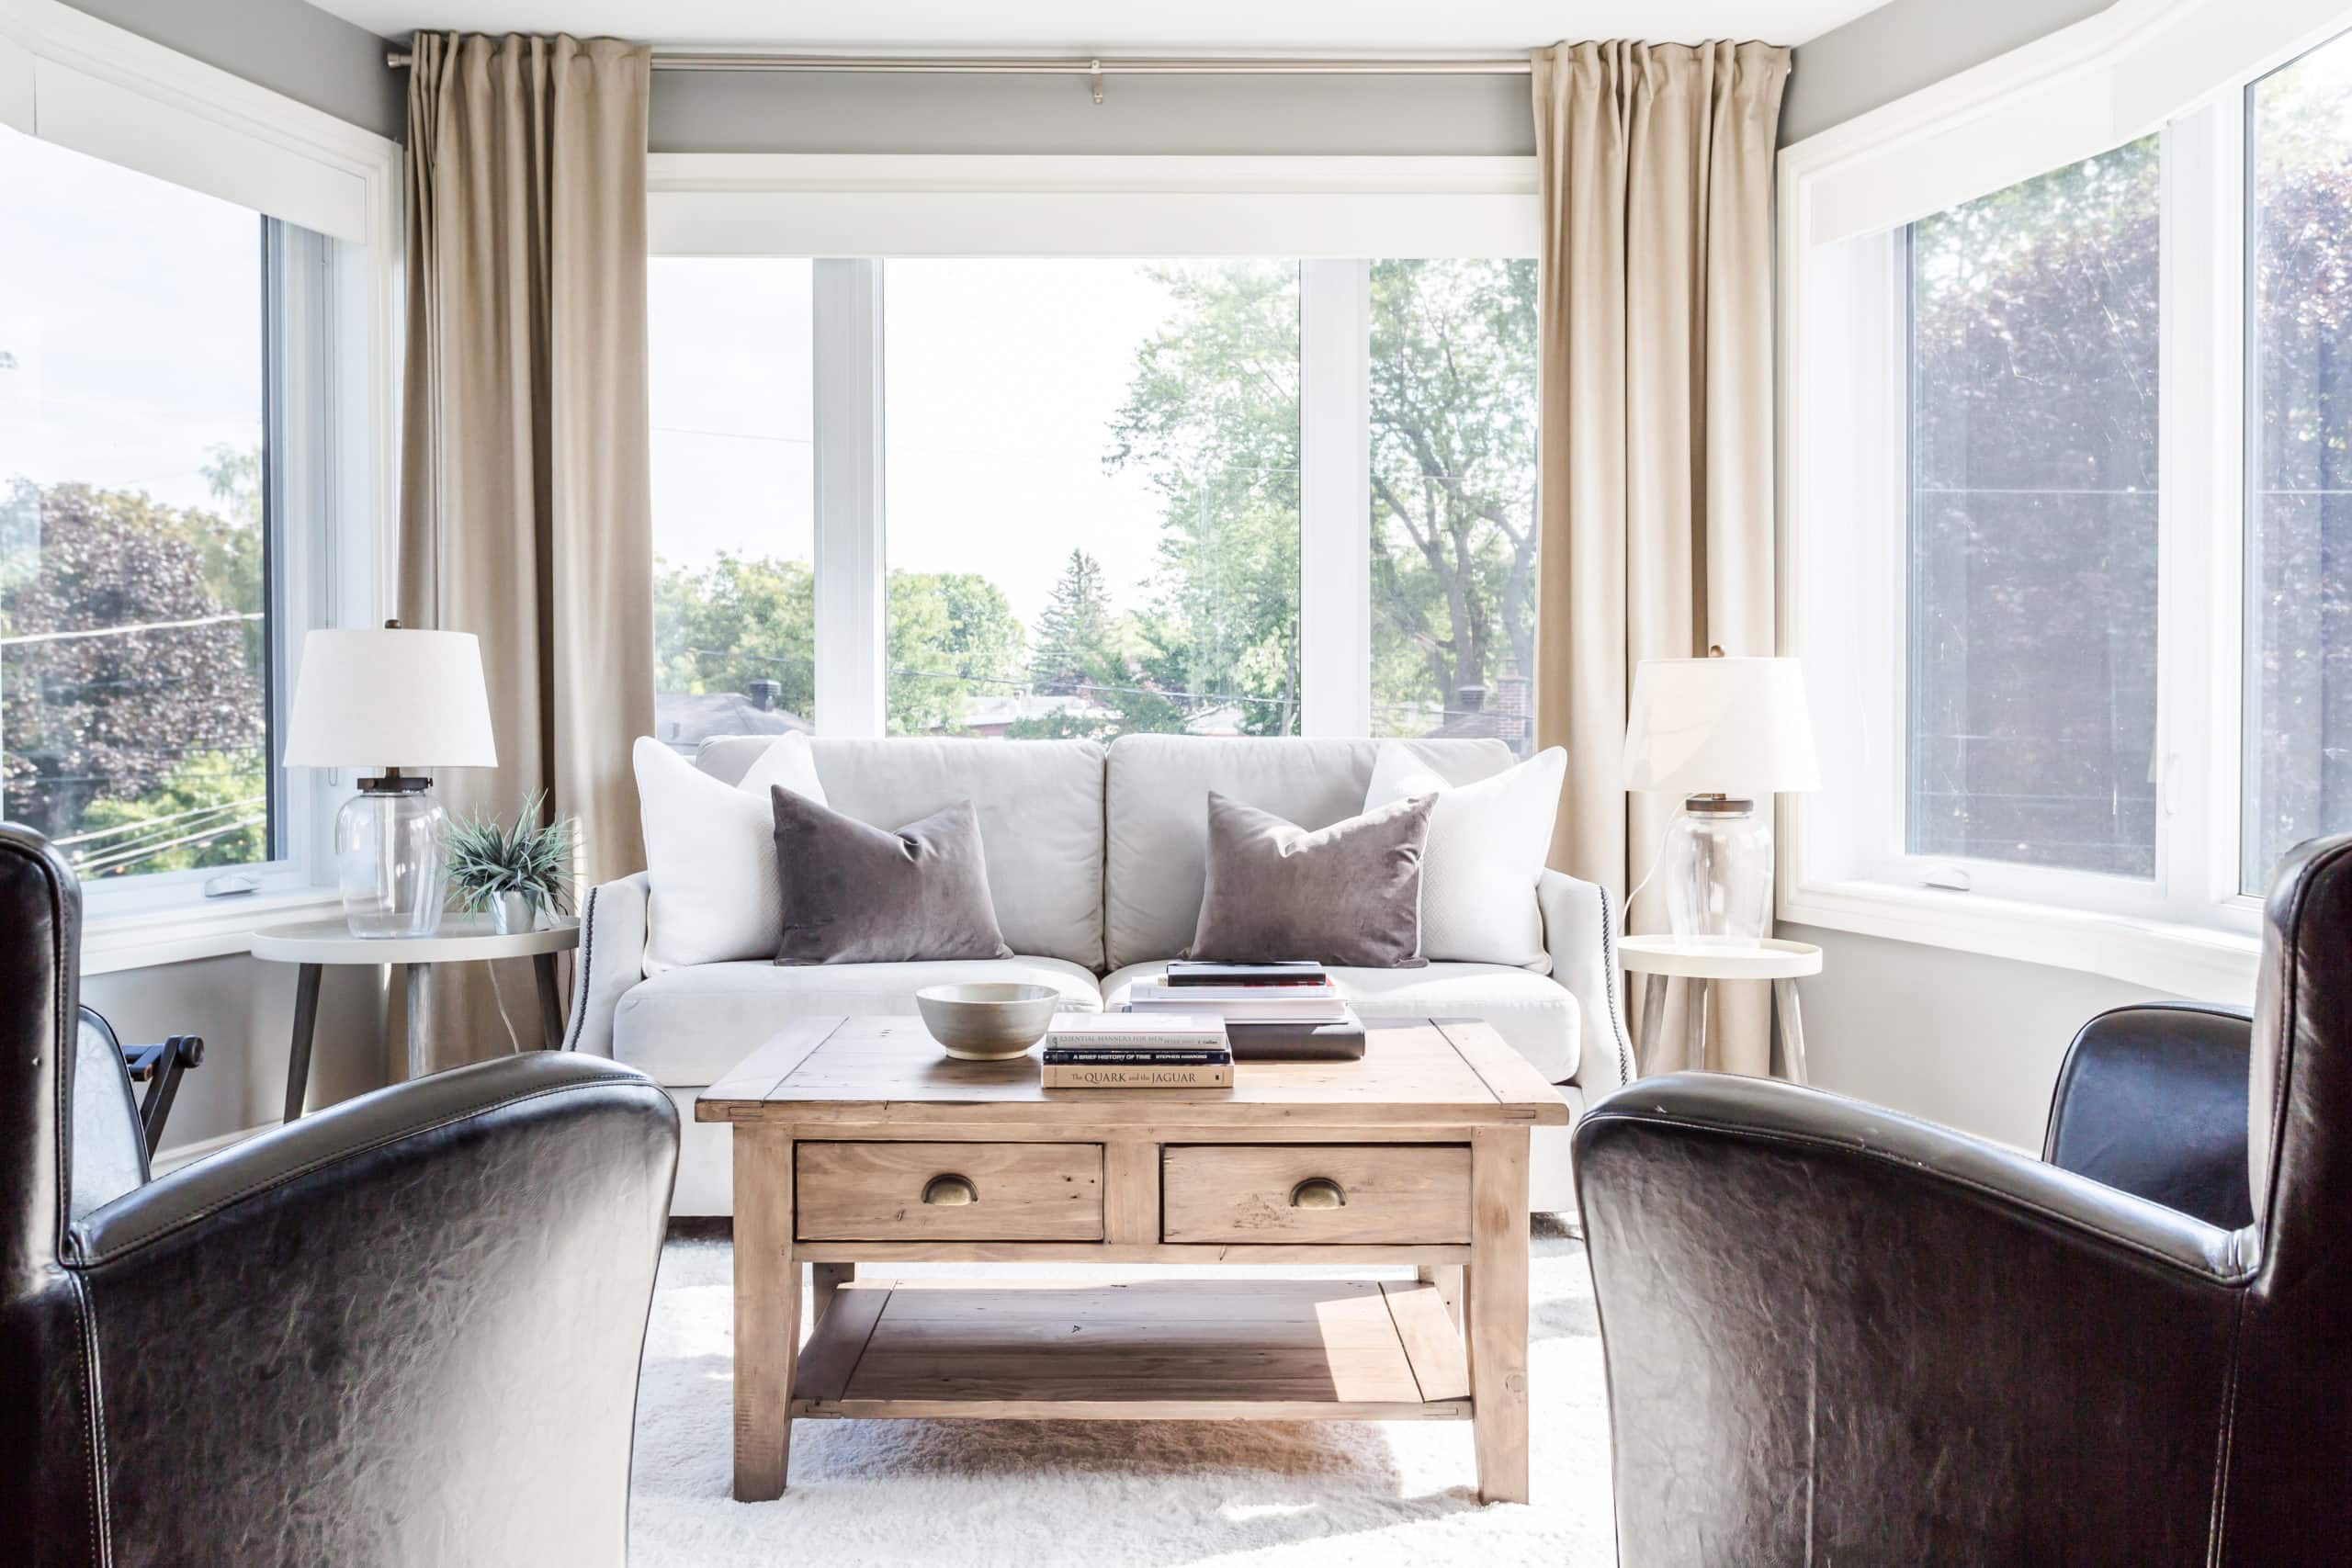 Bright sitting area with three windows revealing a beautiful view